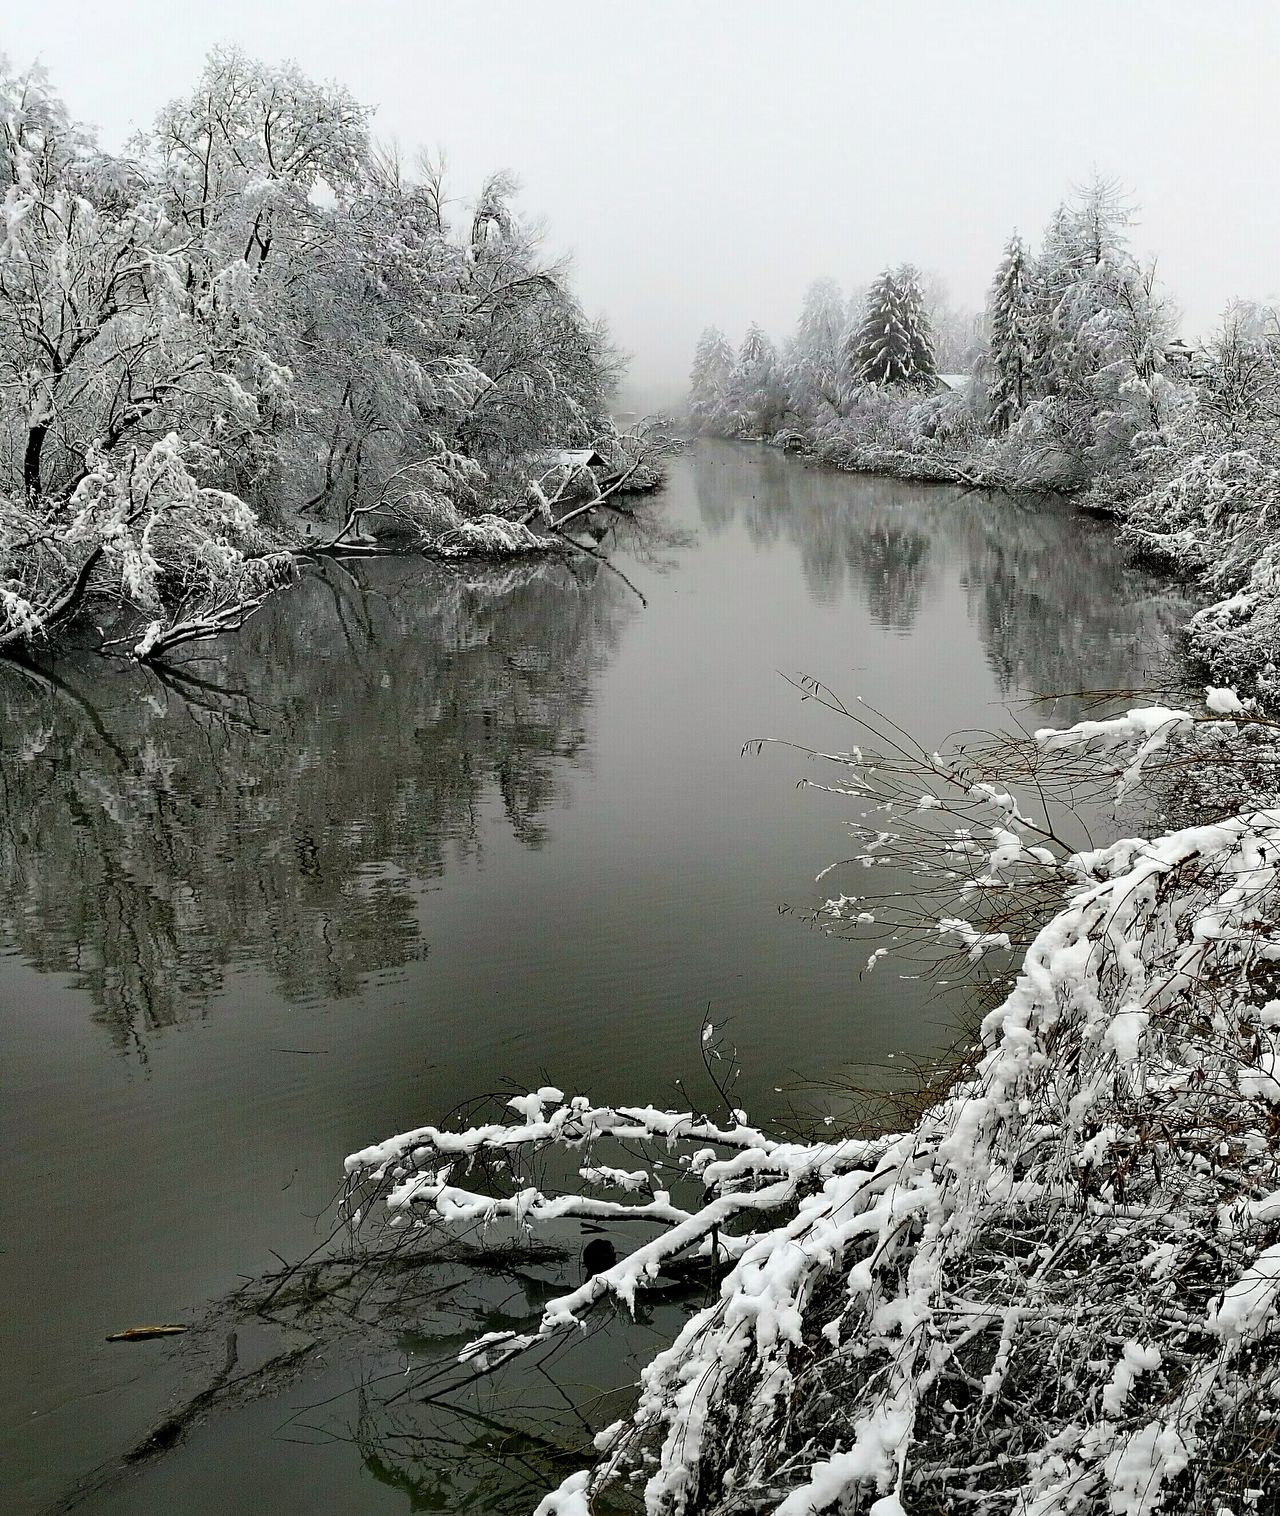 Water Riverbank Snow Covered Trees And Bushes Nature Cloudy Weather Sky